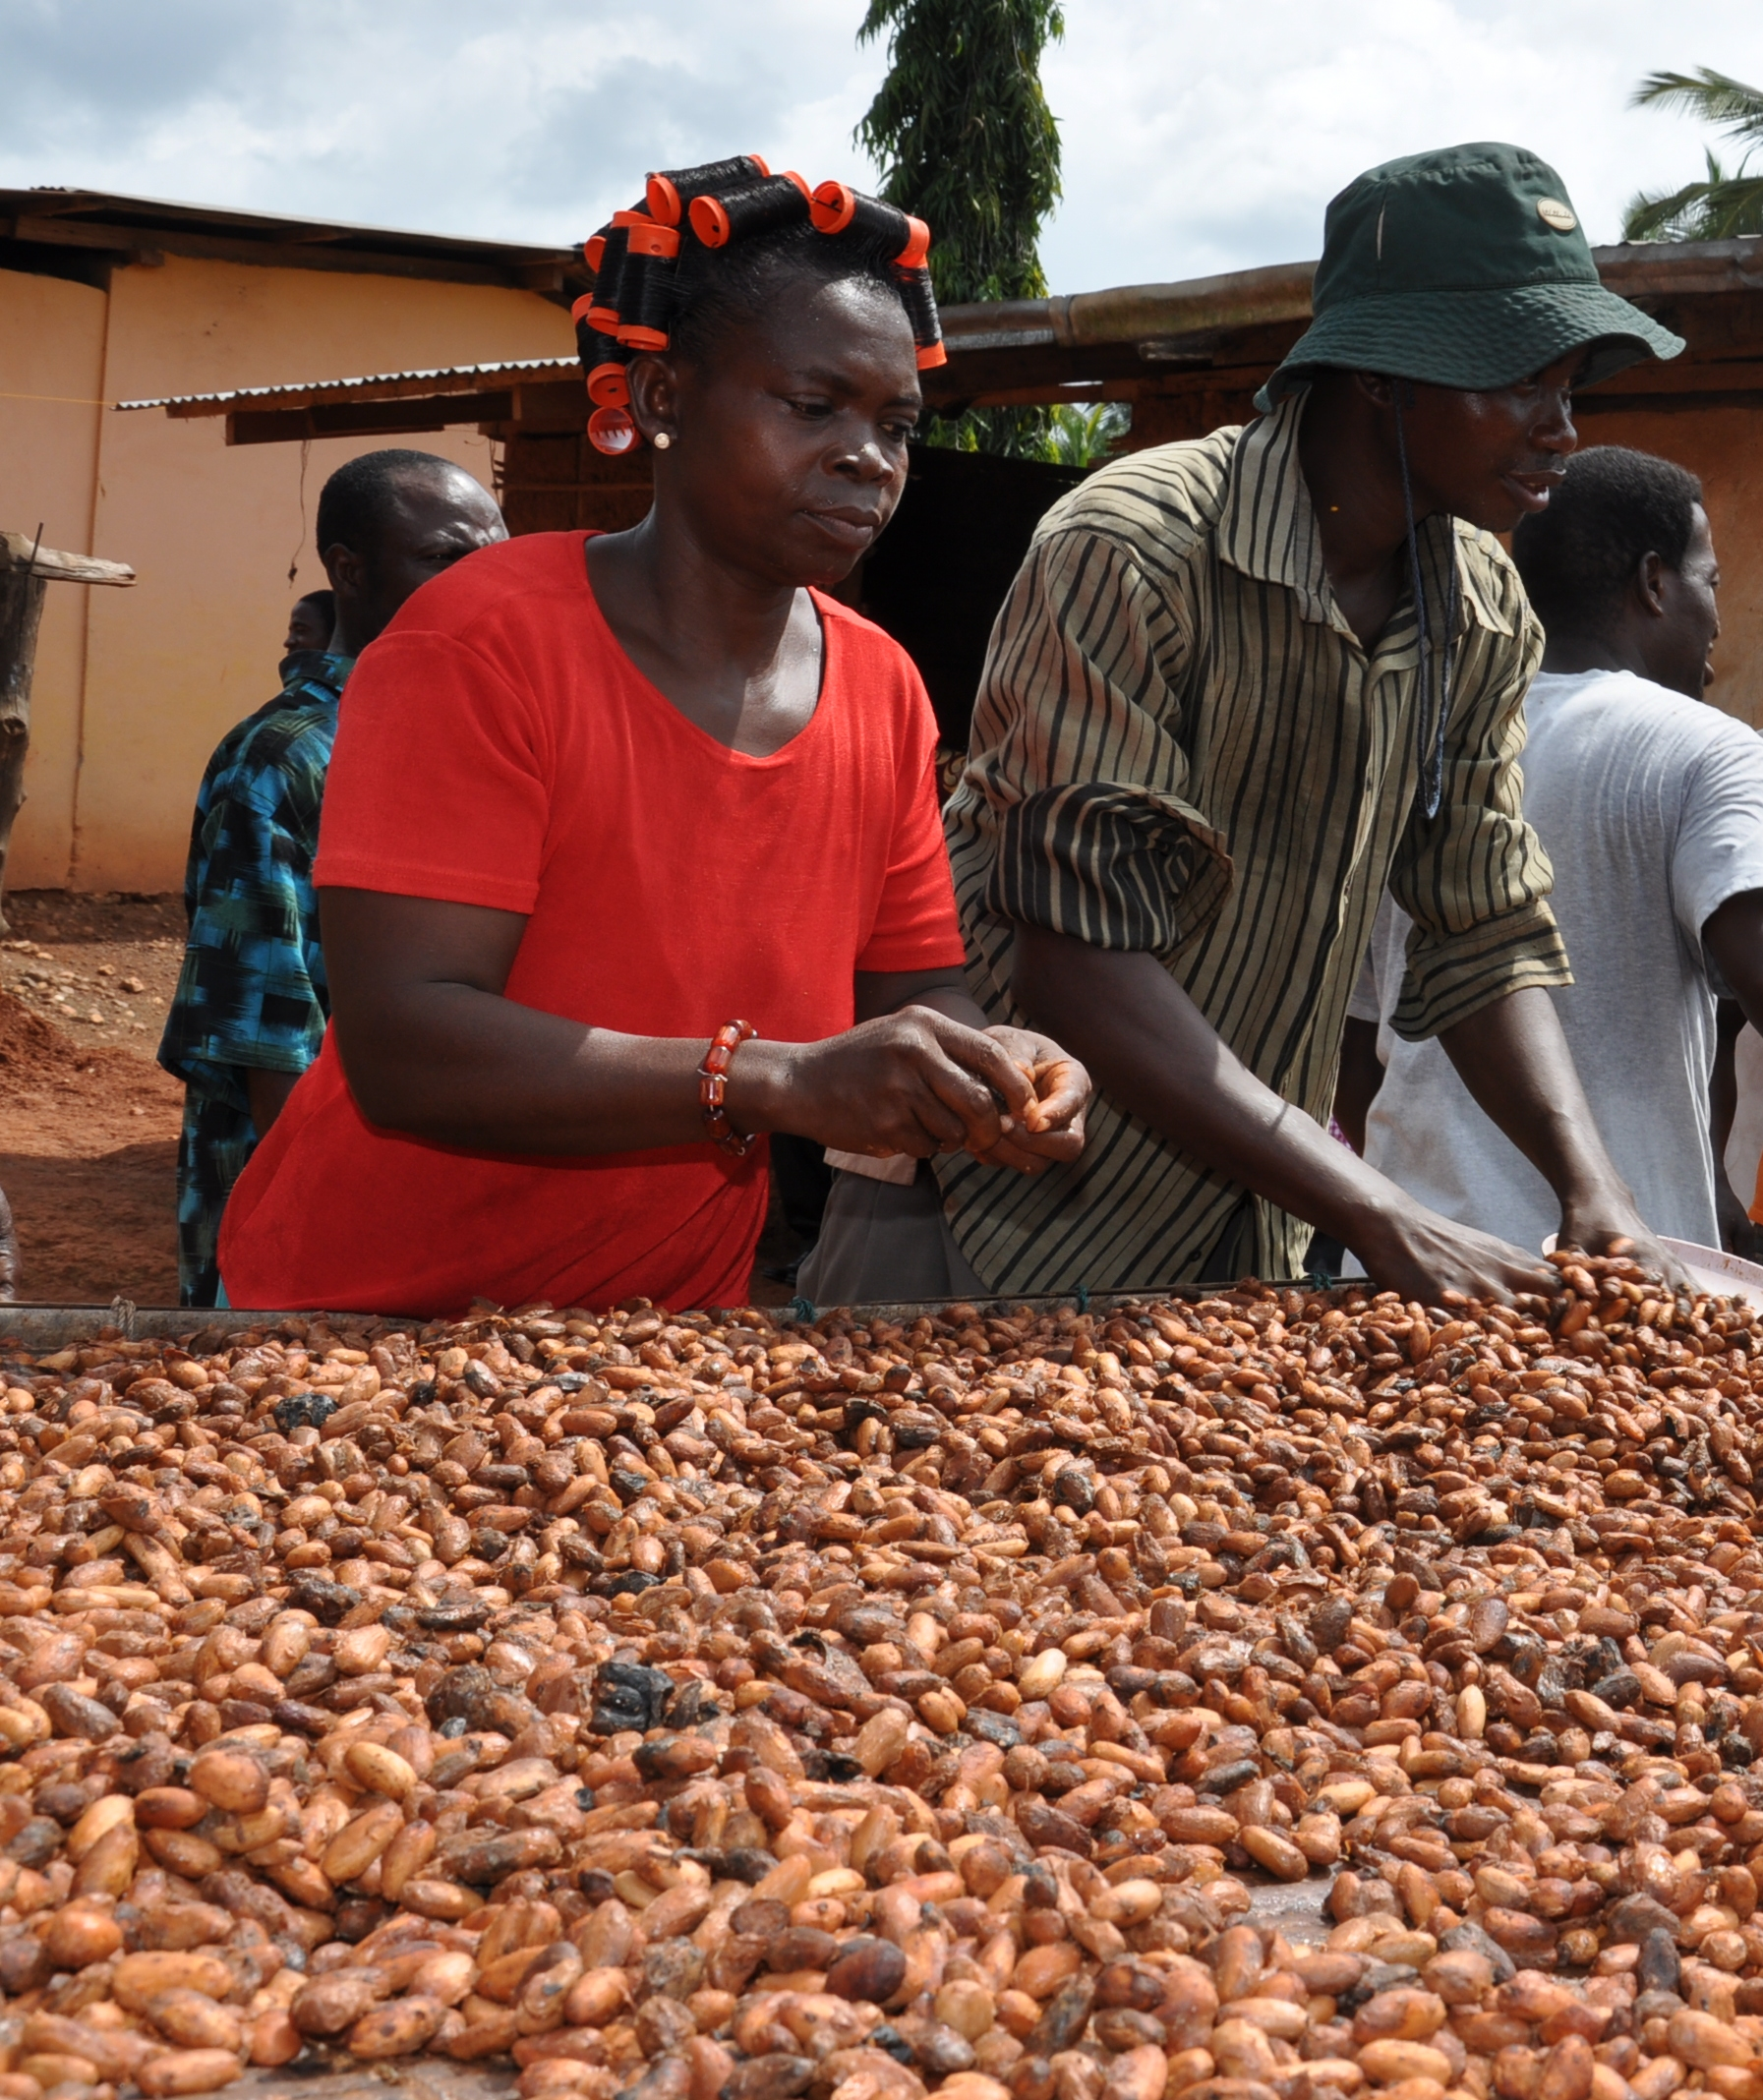 Filling the gender gap in the cocoa sector